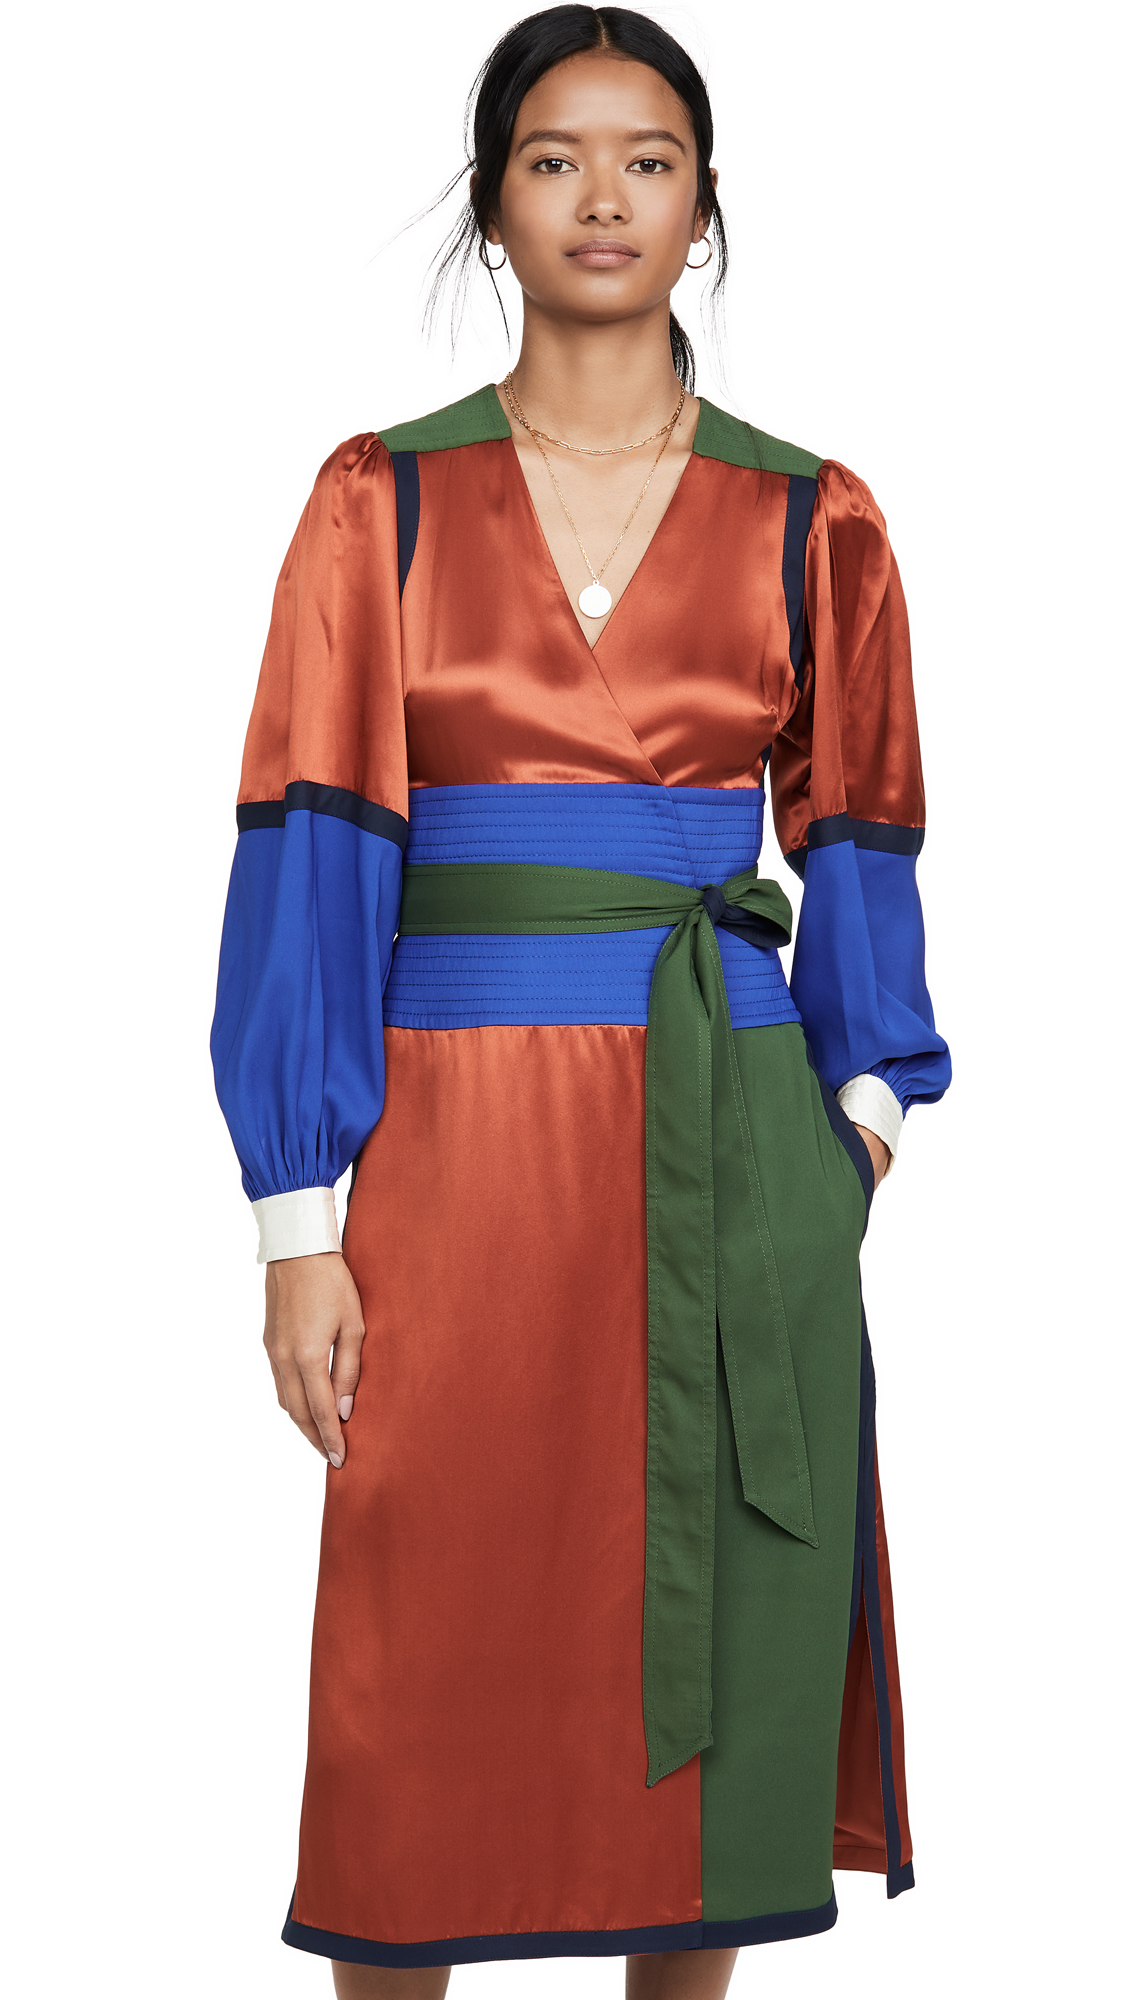 Tory Burch Colorblock Silk Wrap Dress - 30% Off Sale